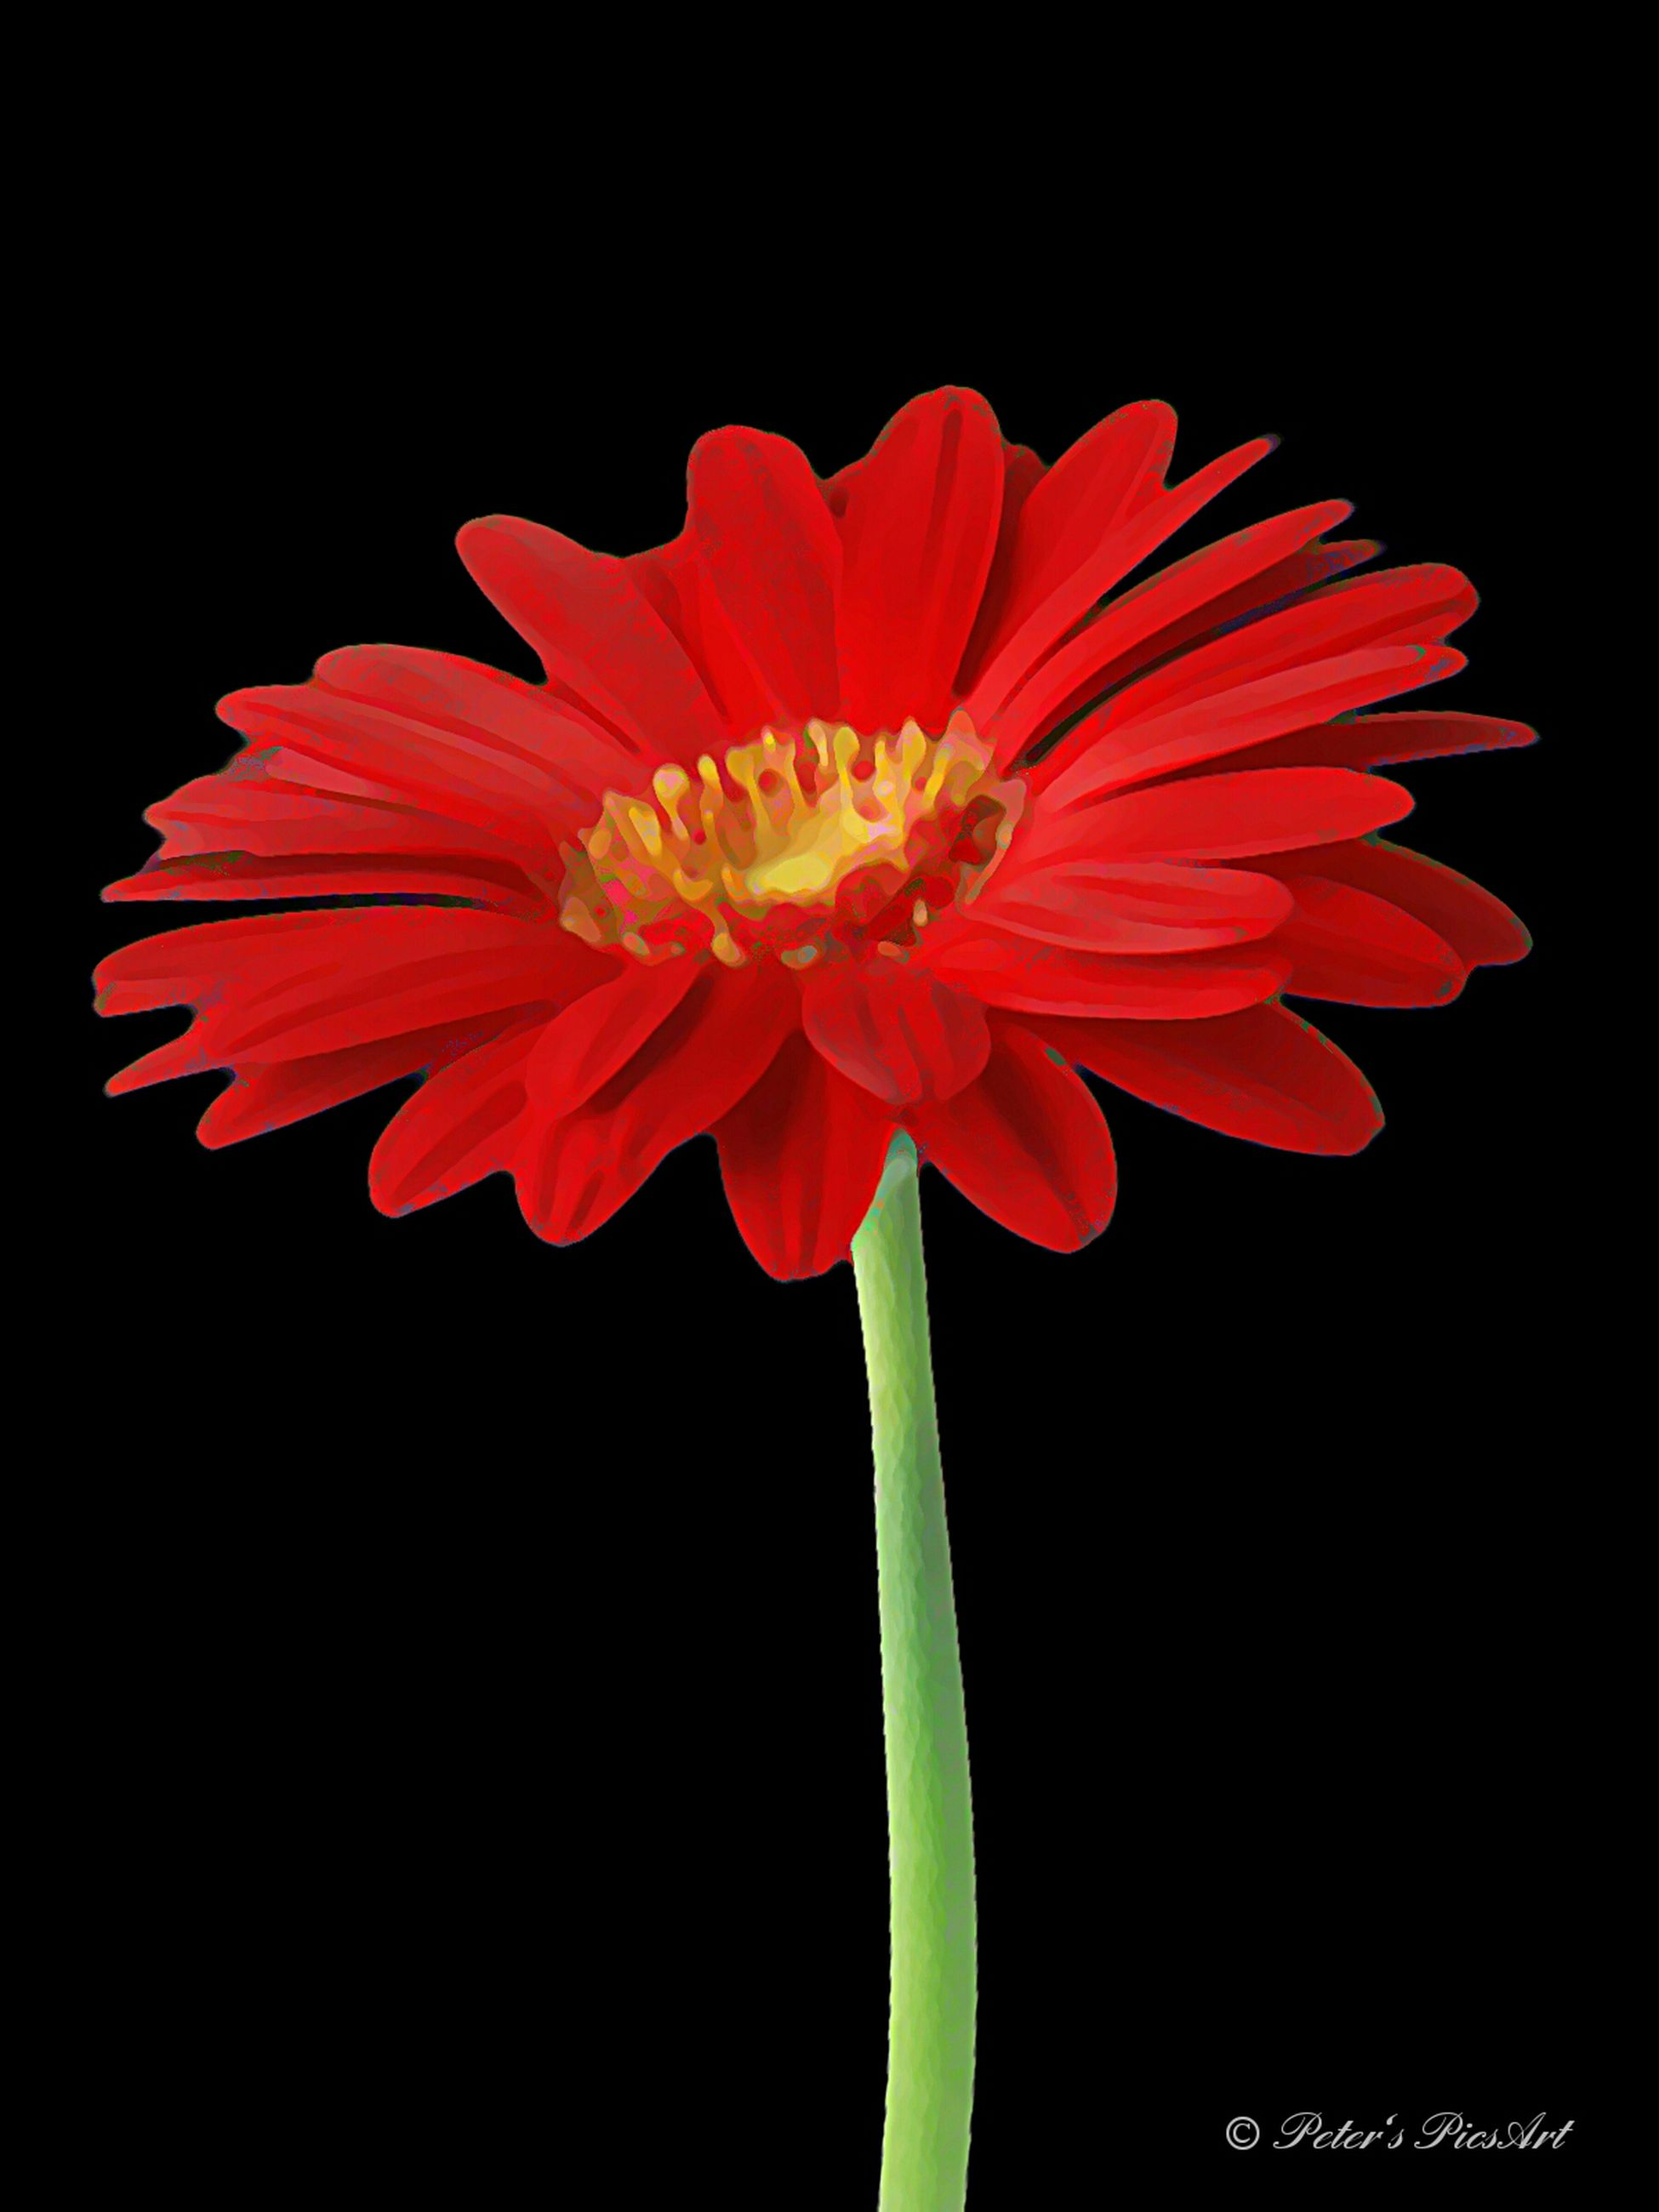 flower, black background, studio shot, freshness, petal, flower head, fragility, red, beauty in nature, growth, close-up, single flower, copy space, nature, stem, plant, cut out, blooming, no people, stamen